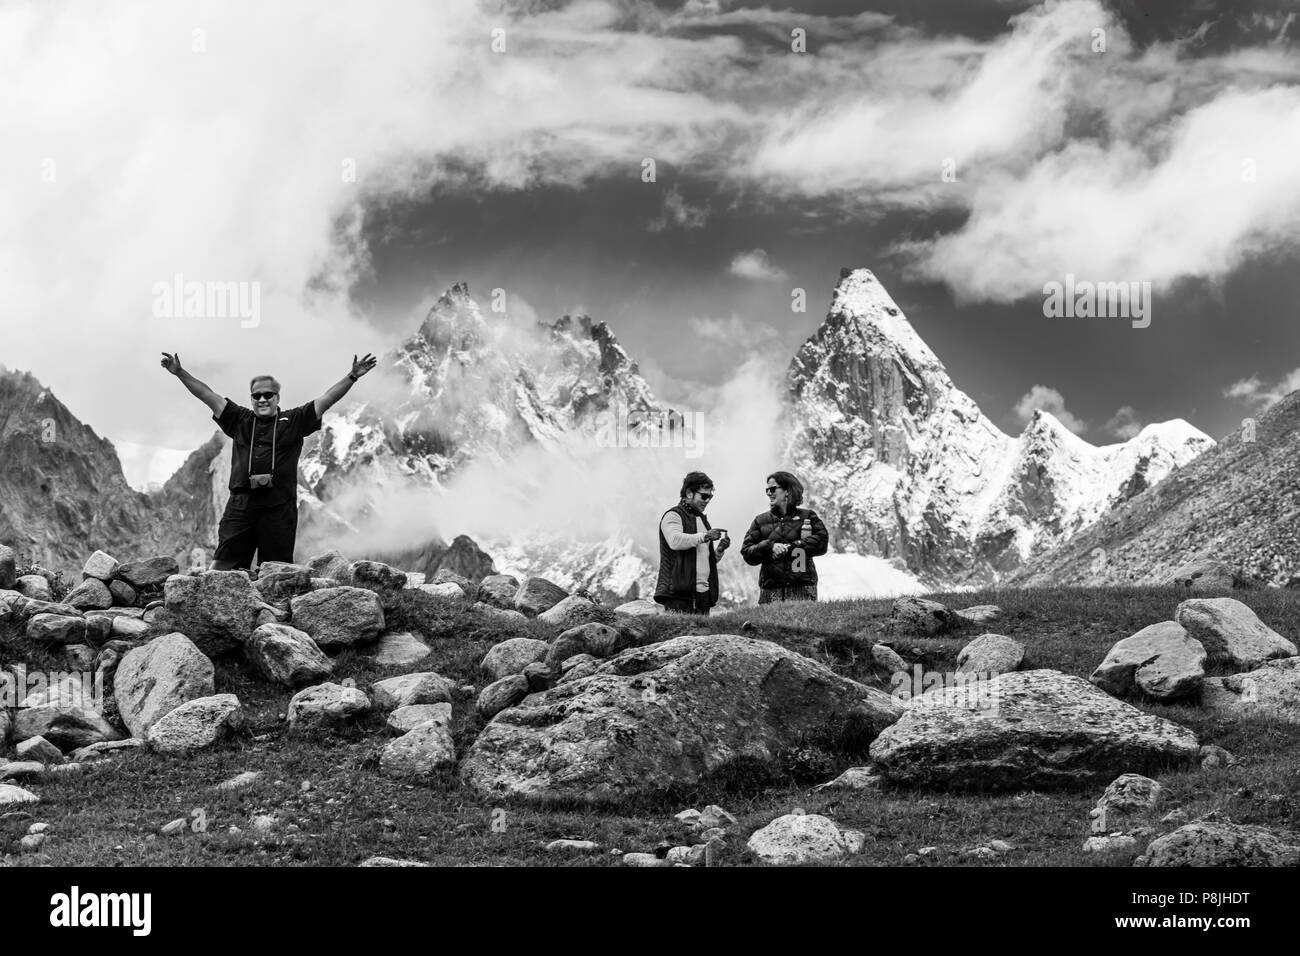 Travelers infront of the  massive himalayan peaks of NUN and KUN which reach a height of23,409 feet - ZANSKAR, LADAKH, INDIA - Stock Image